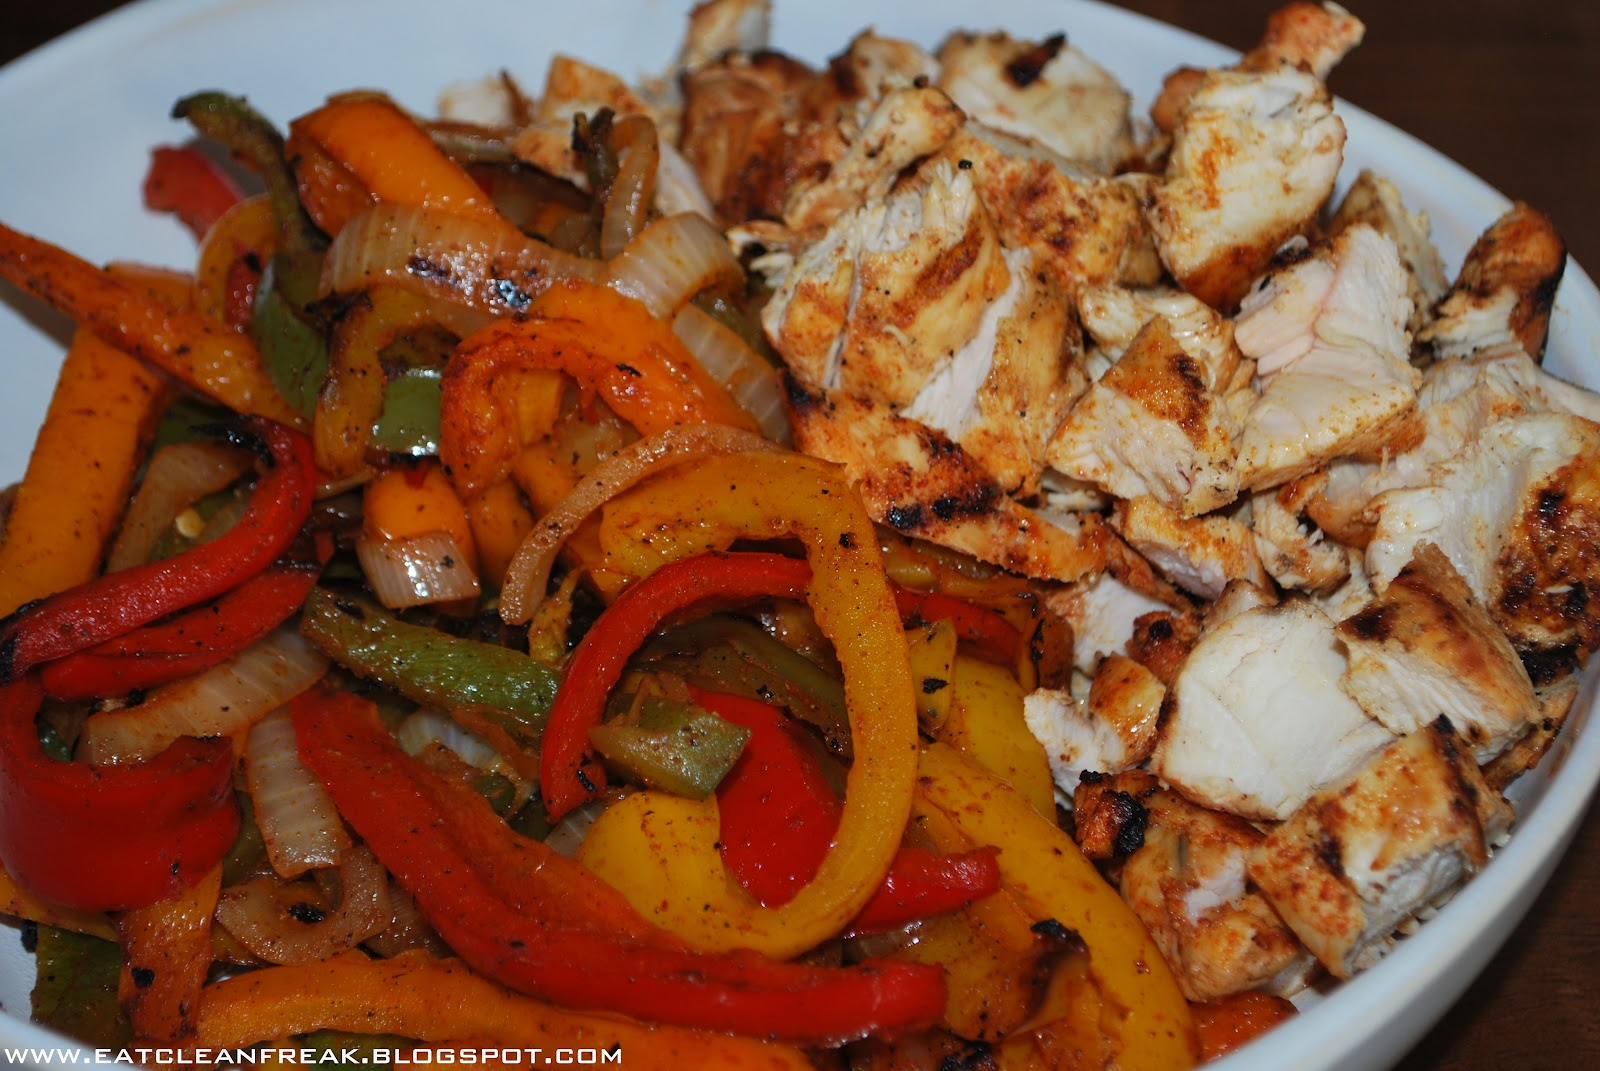 CLEAN FREAK: Grilled Chicken Fajitas